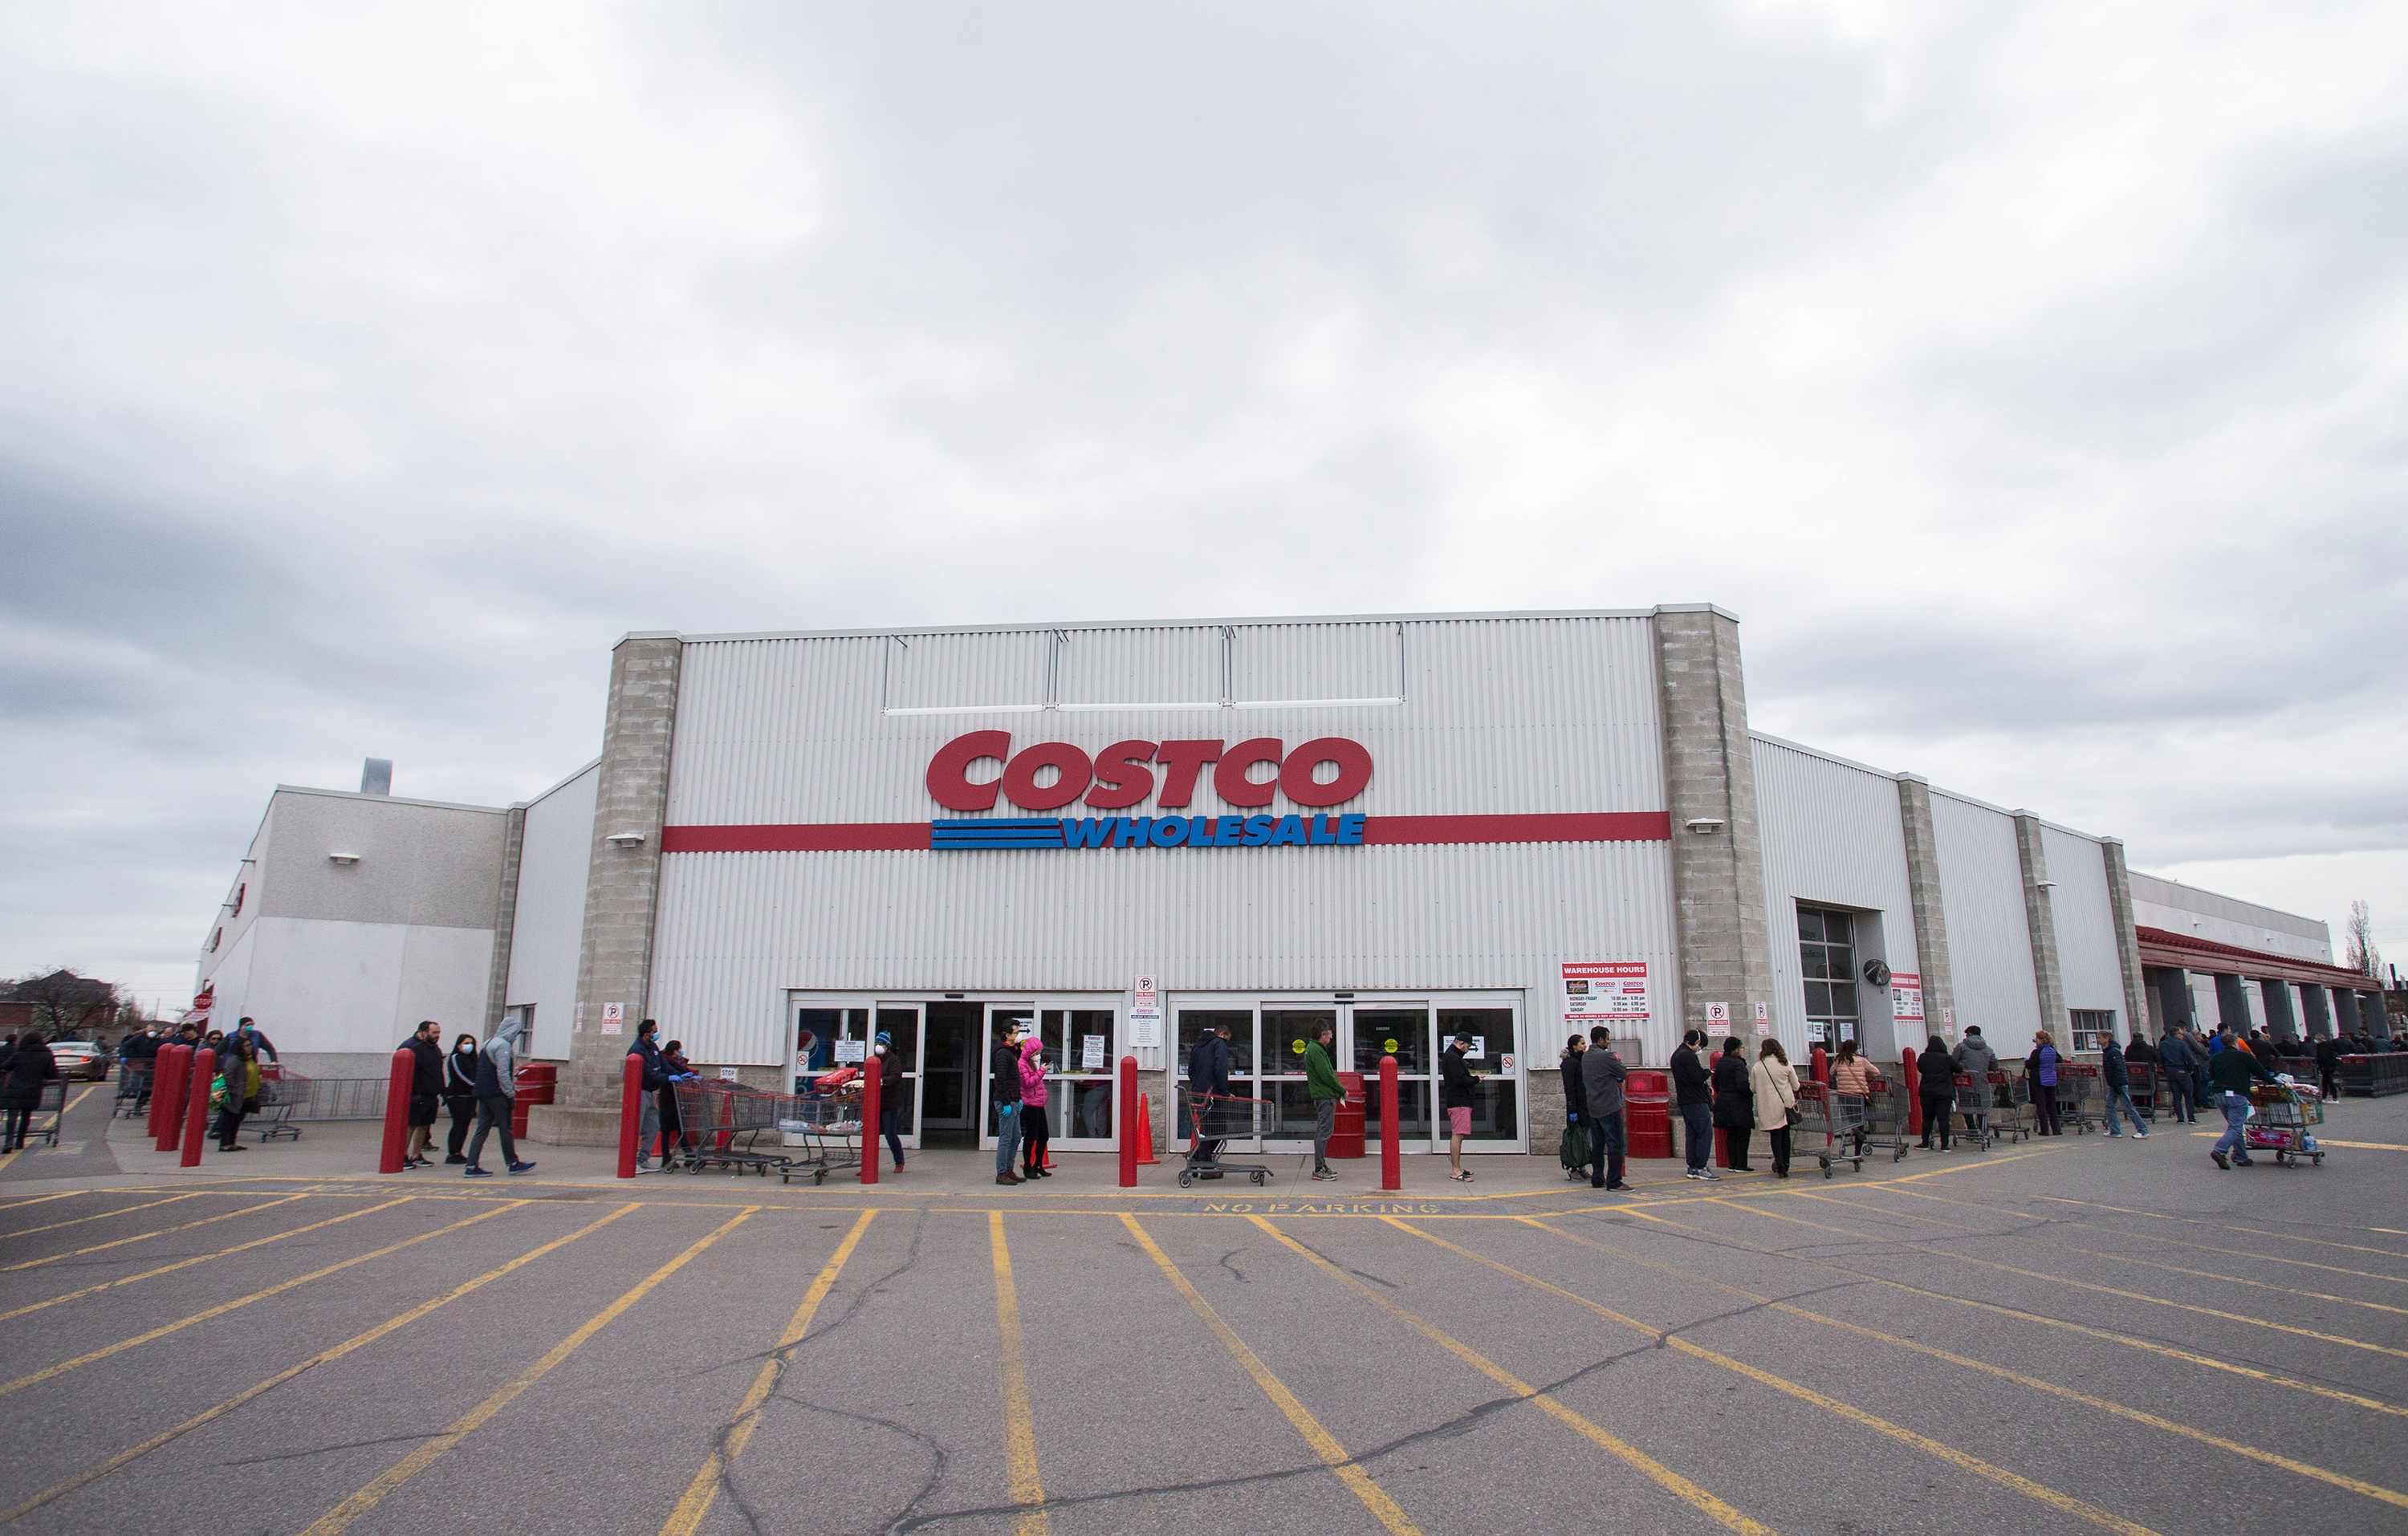 Are you a first responder? You can cut the line at Costco